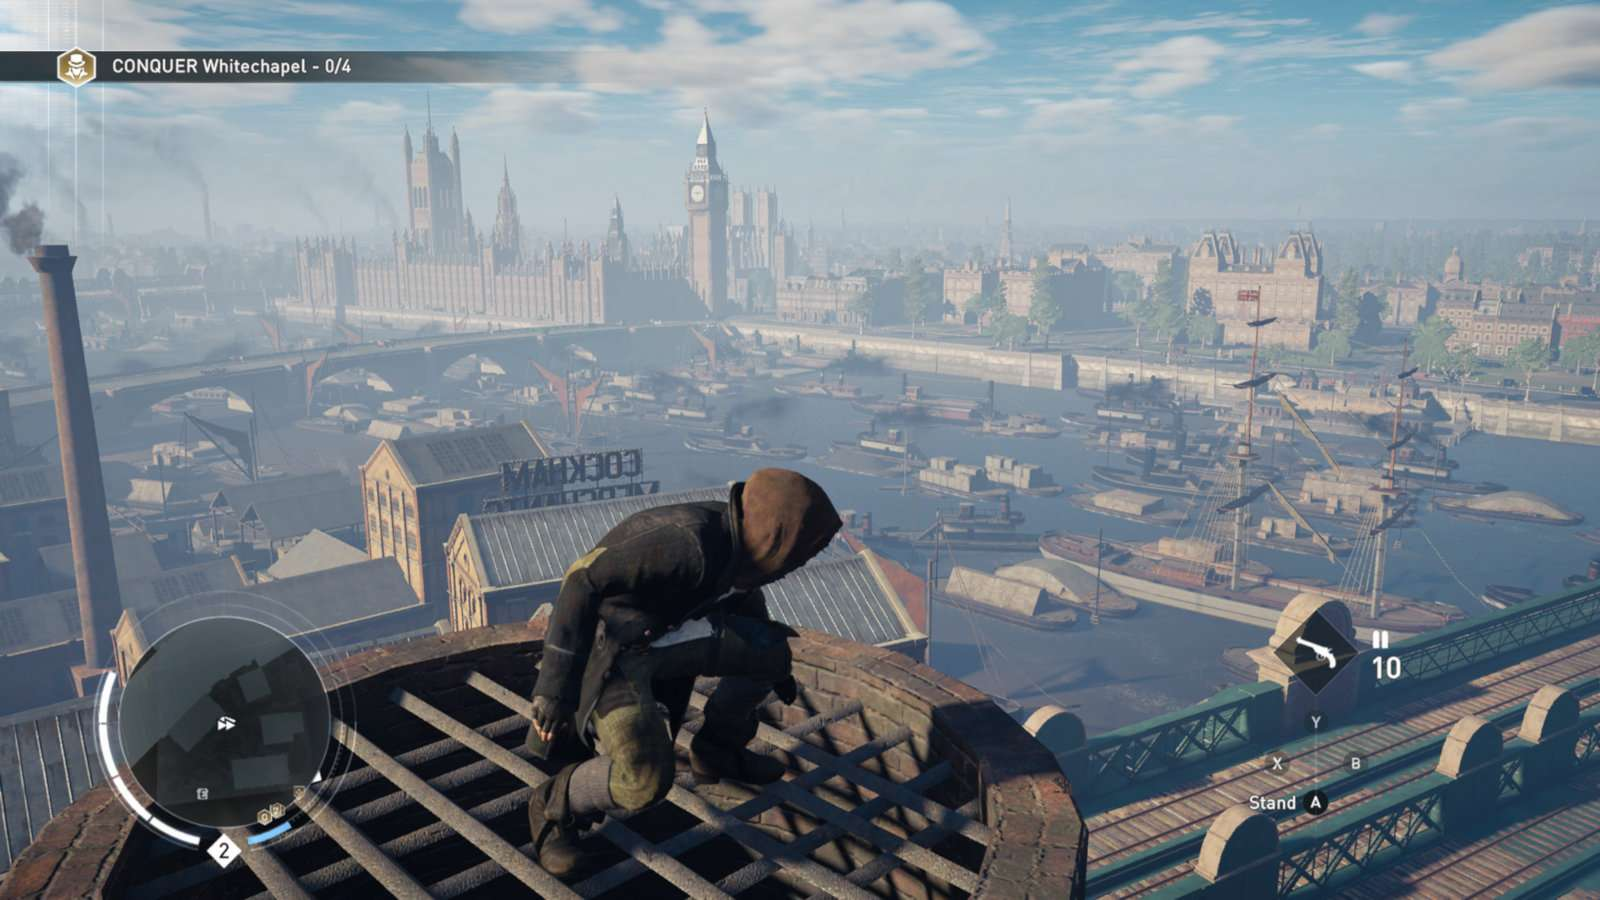 The best video games to inspire travel - explore Victorian London while playing Assassin's Creed Syndicate.